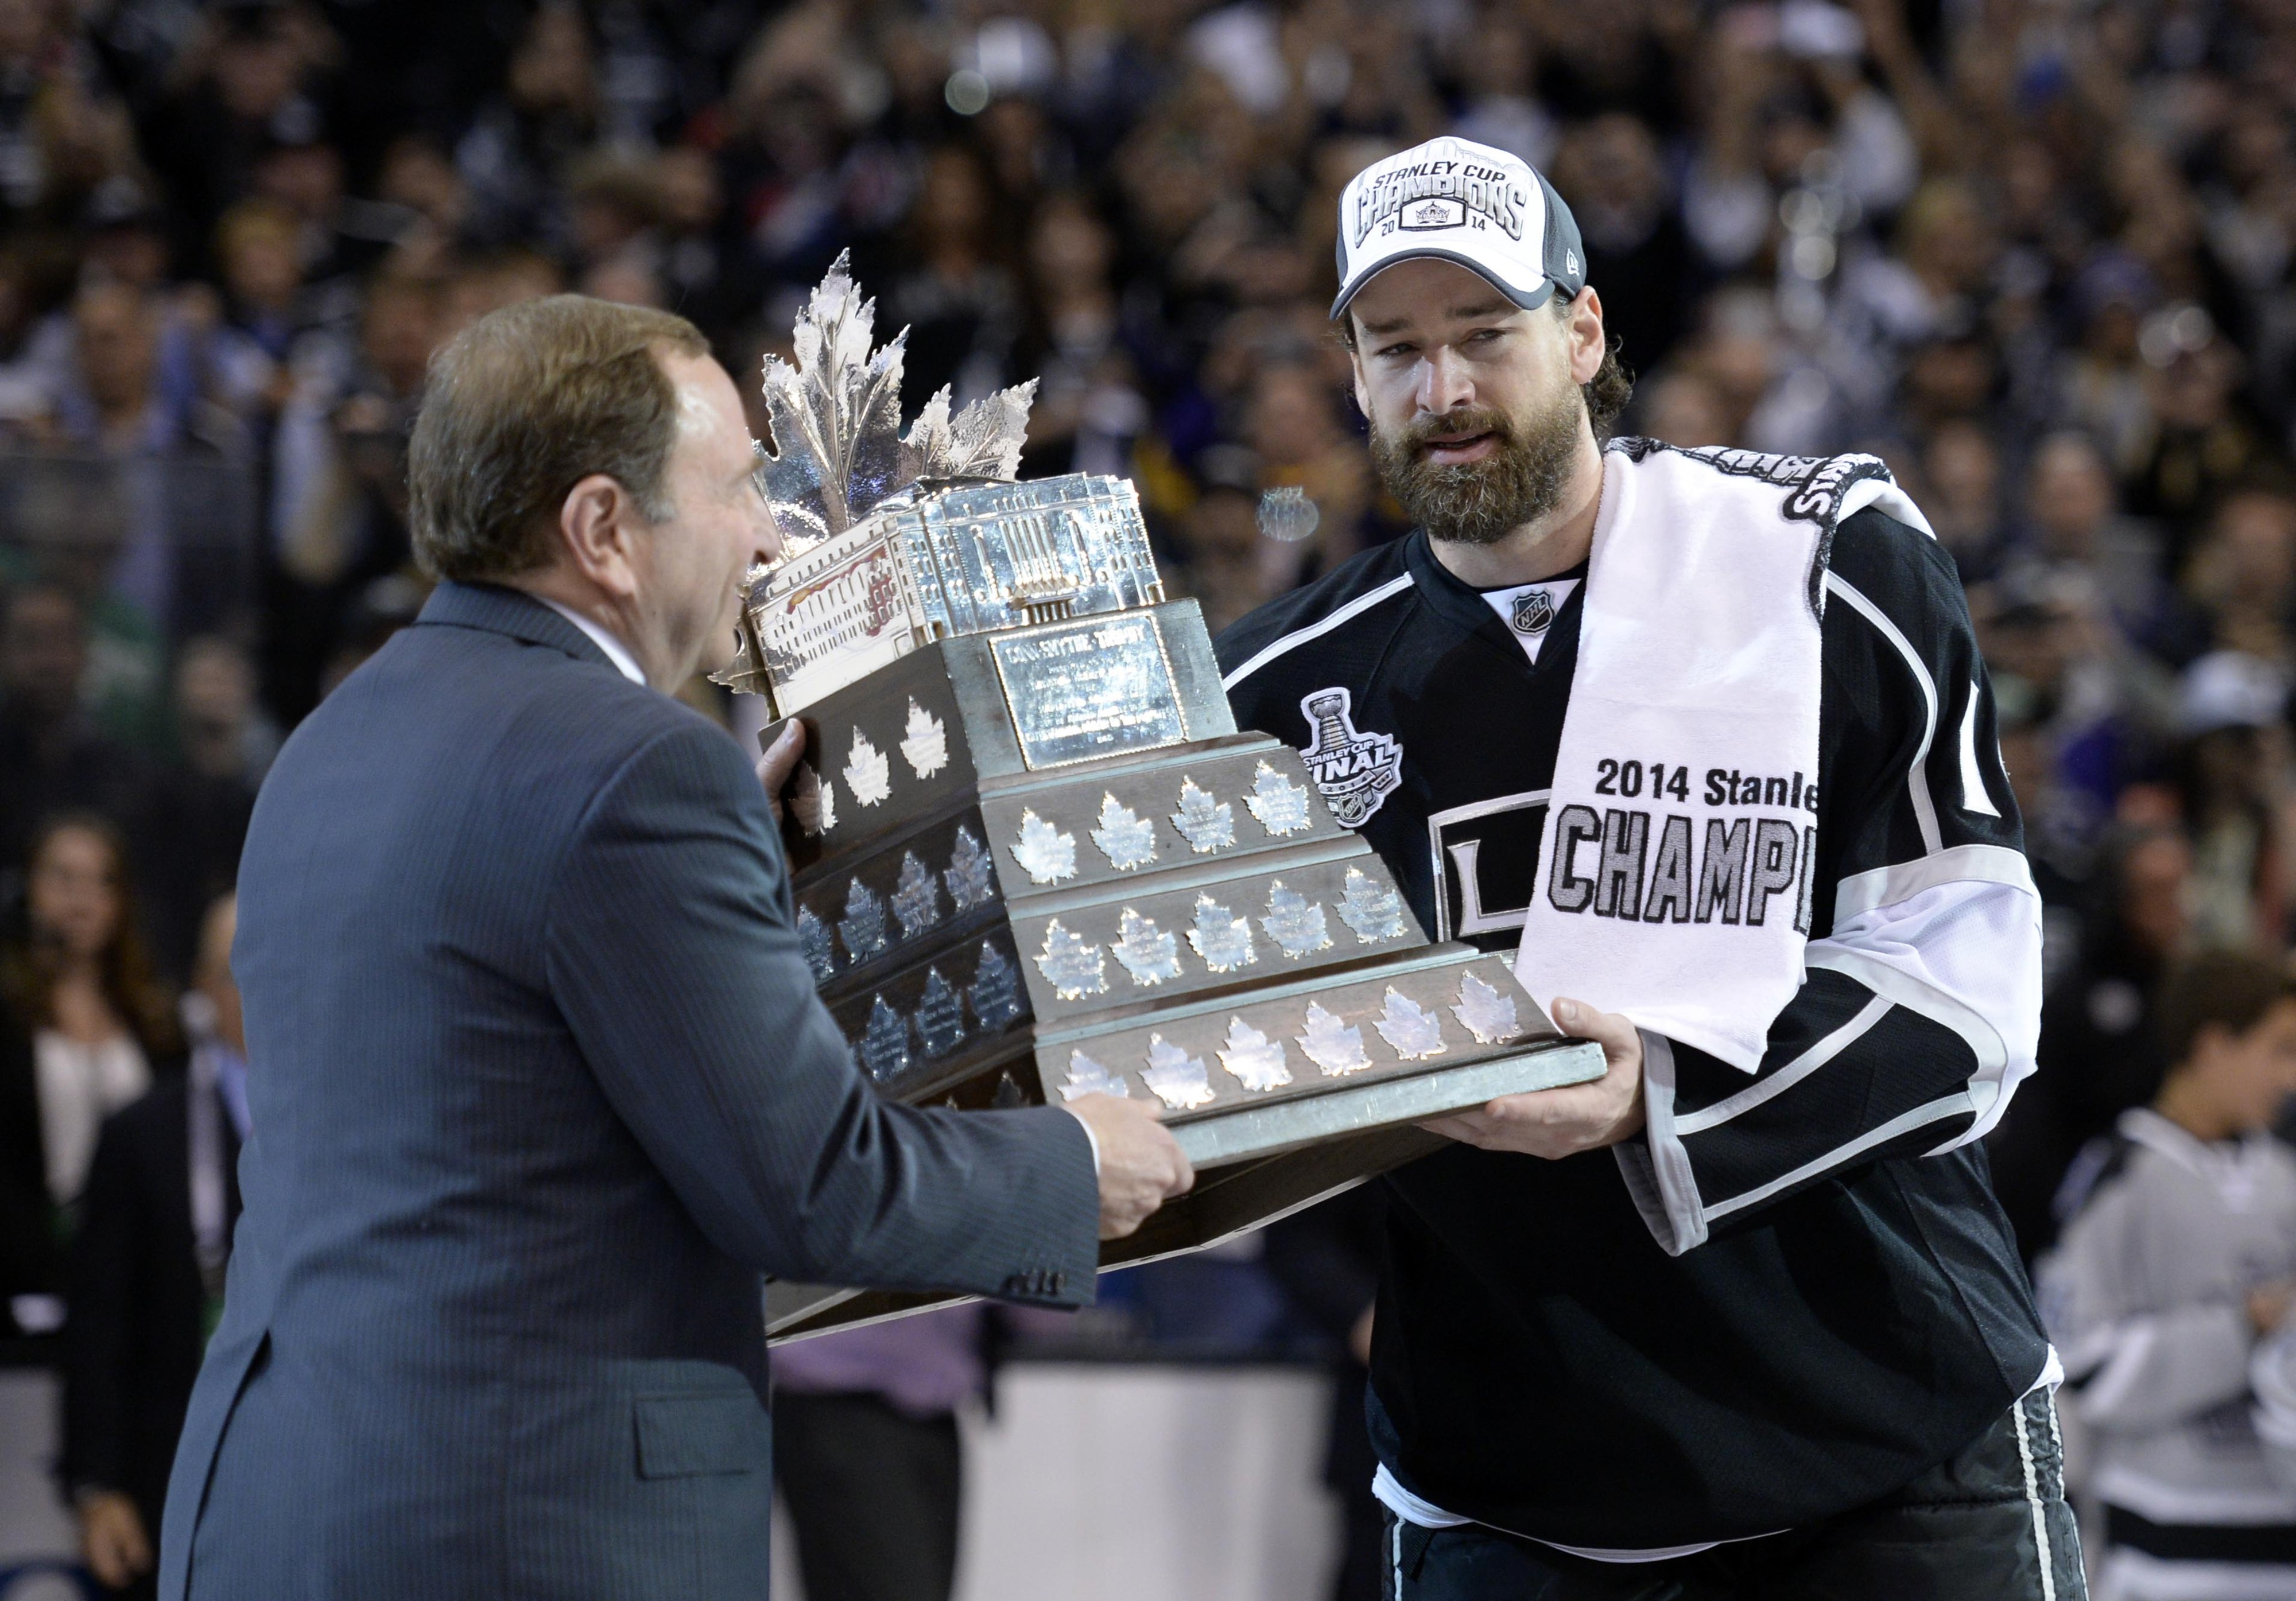 Justin Williams was great long before winning the Conn Smythe